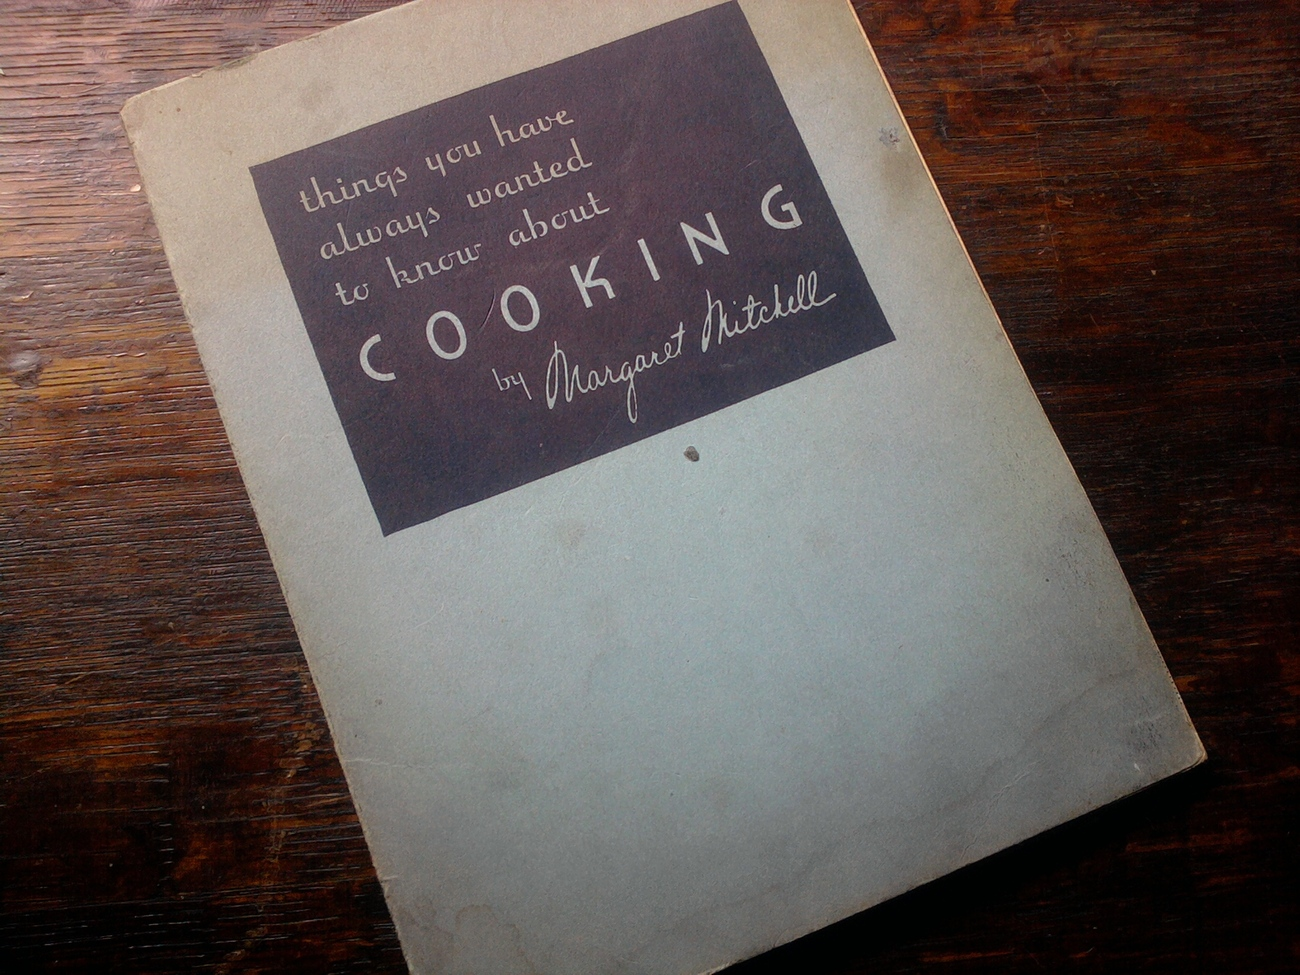 COOKBOOK - things you have always wanted to know about cooking-Margaret Mitchell